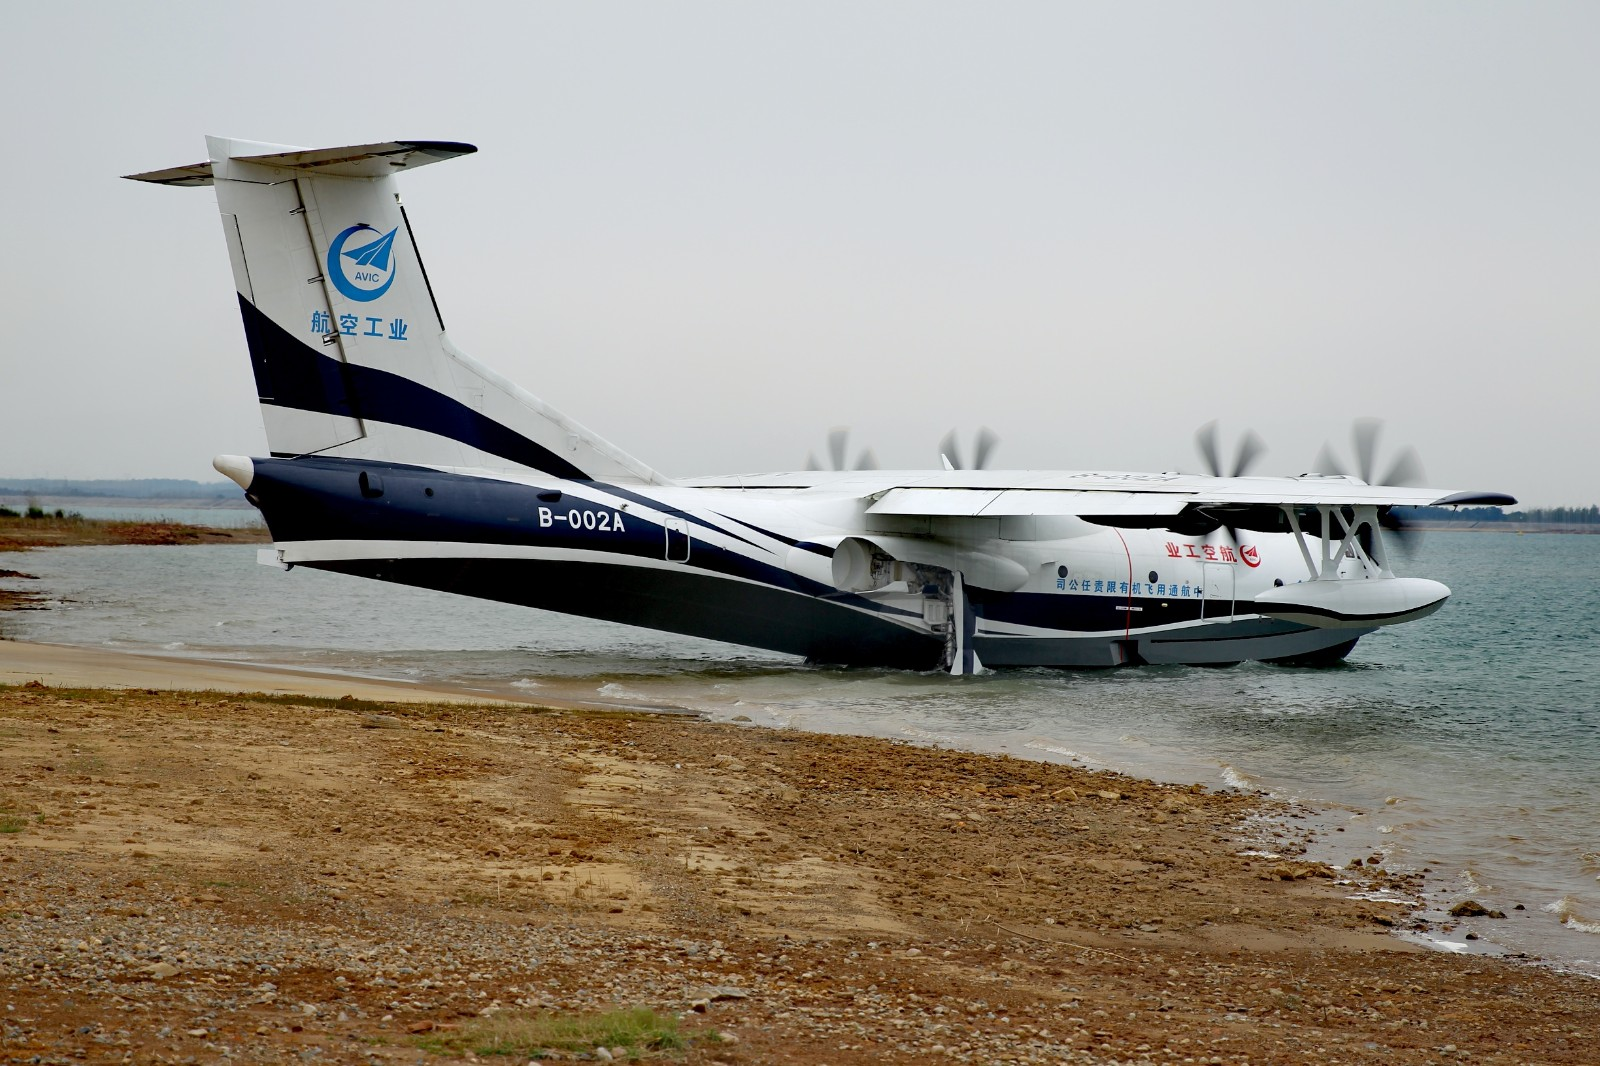 Xi sends congratulatory messages on AG600's first water takeoff, landing